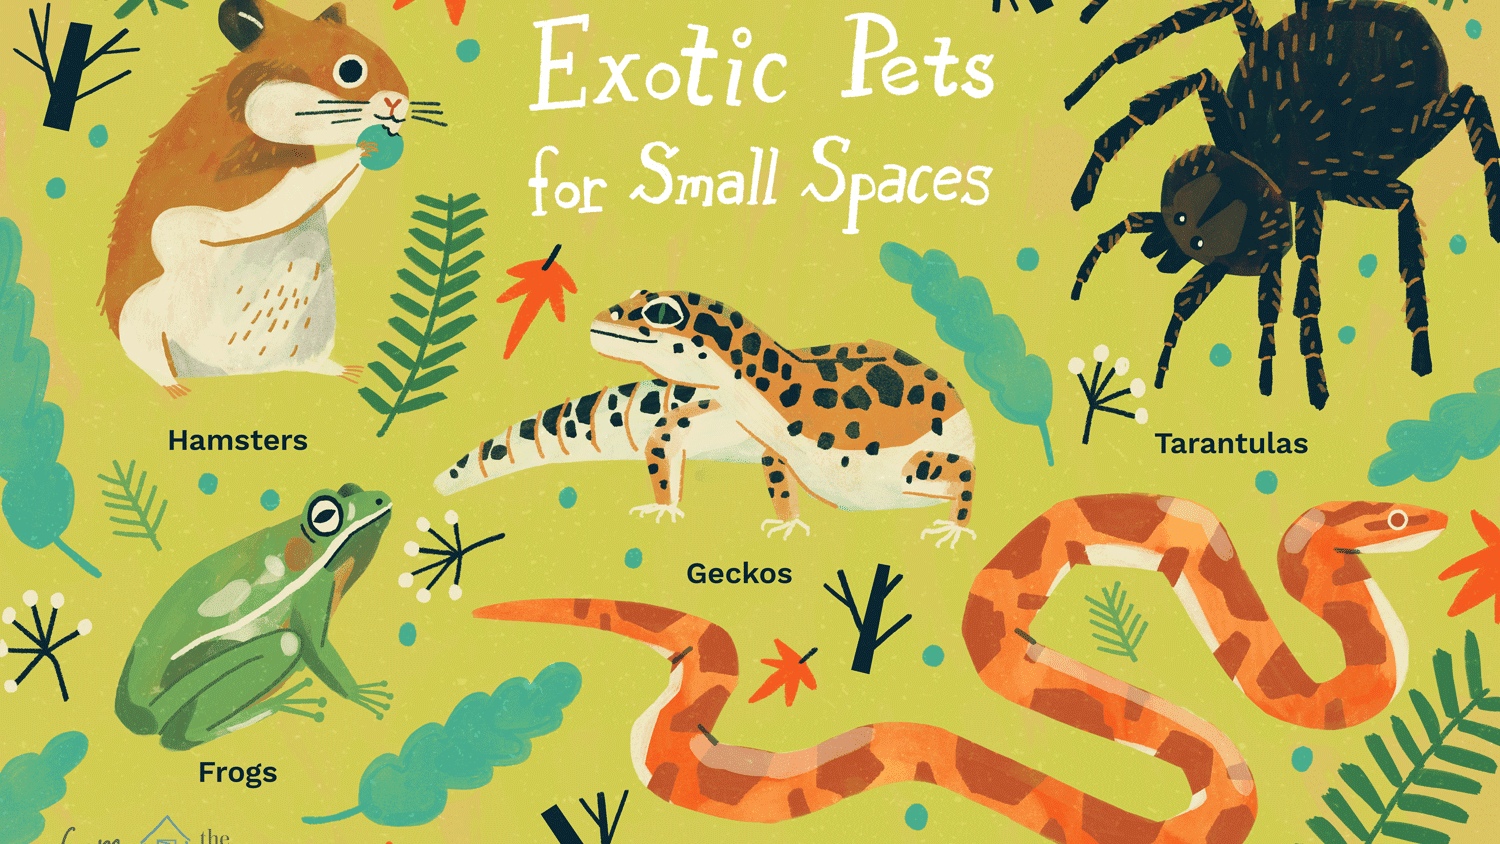 10 Best Exotic Pets For Small Spaces